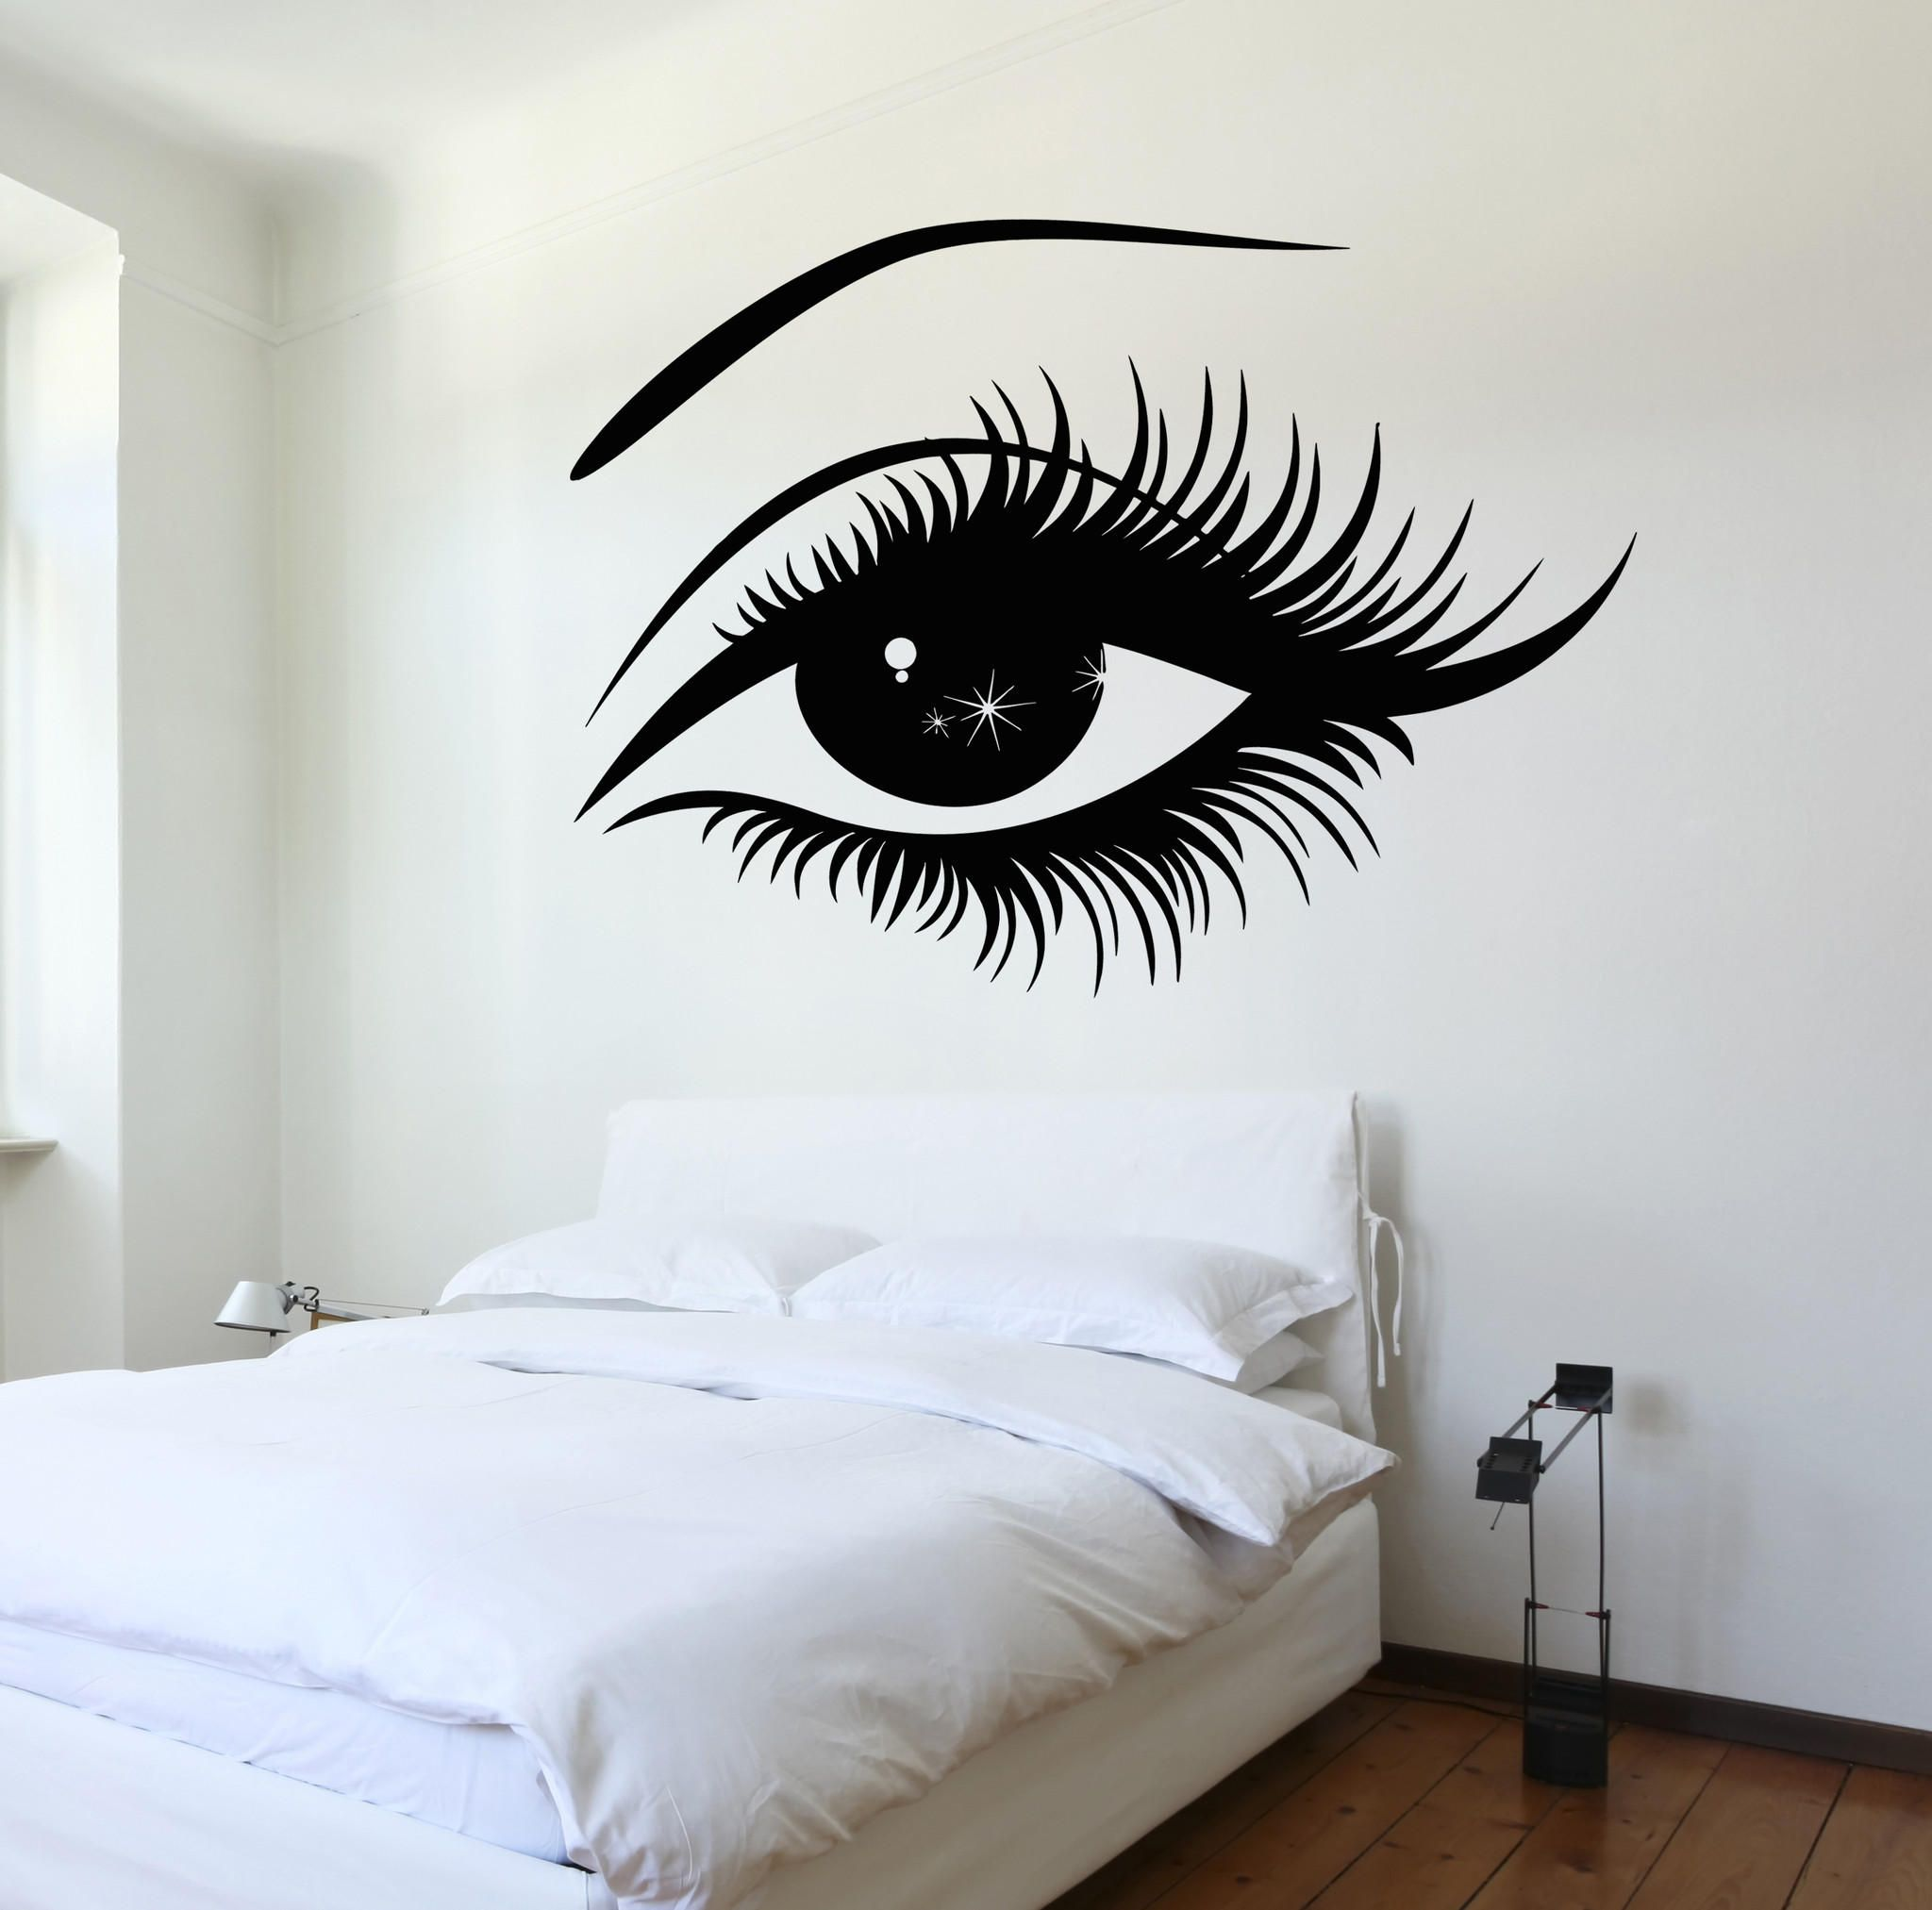 Vinyl Decal Wall Decal Womans Eyes Sexy Girl Bedroom Sticker - Wall stickershuhushopxaudrey hepburn beautiful eyes removable